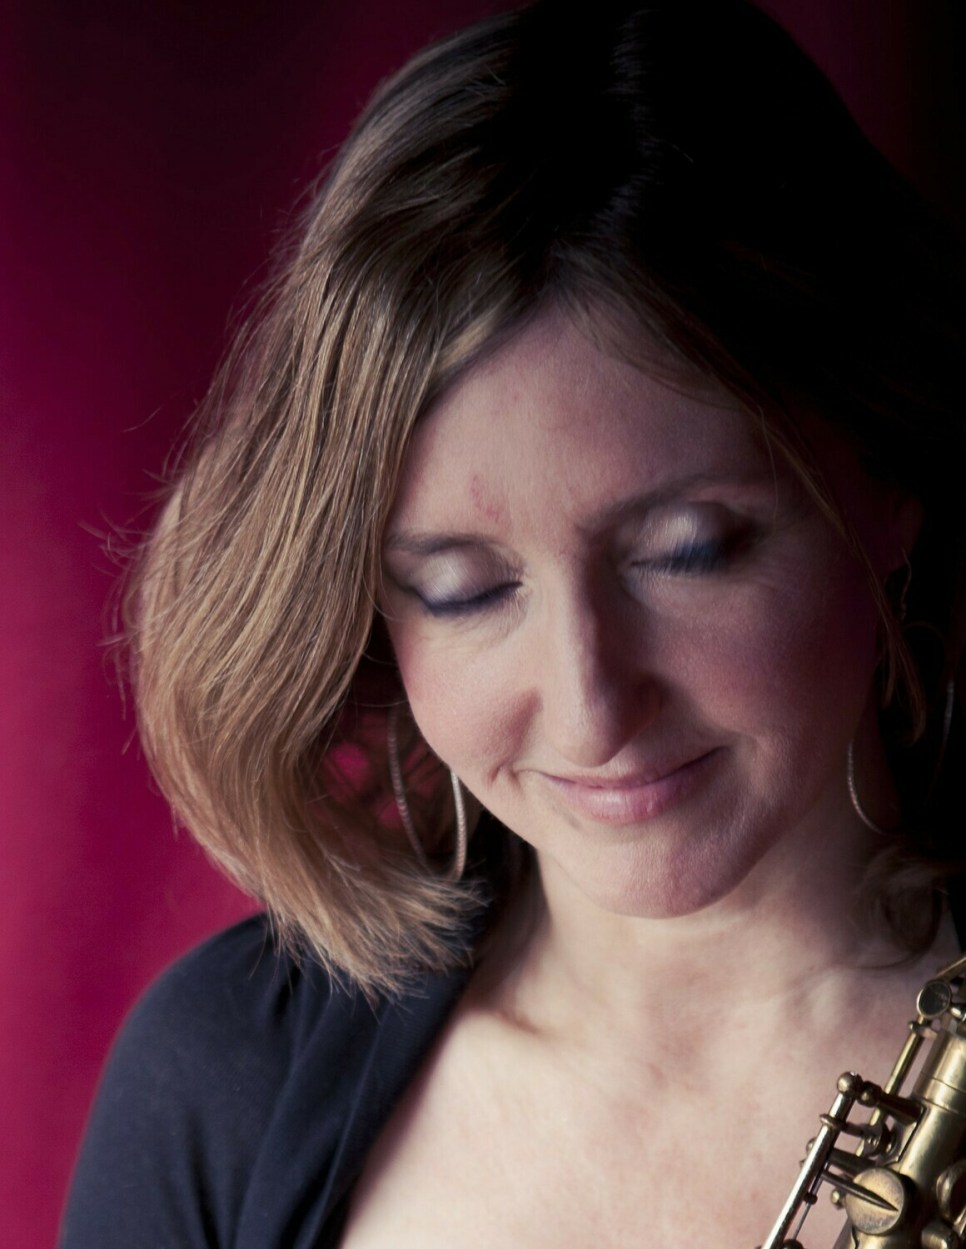 Audrey Welber Quartet - June 25 2019 - 7:00pm